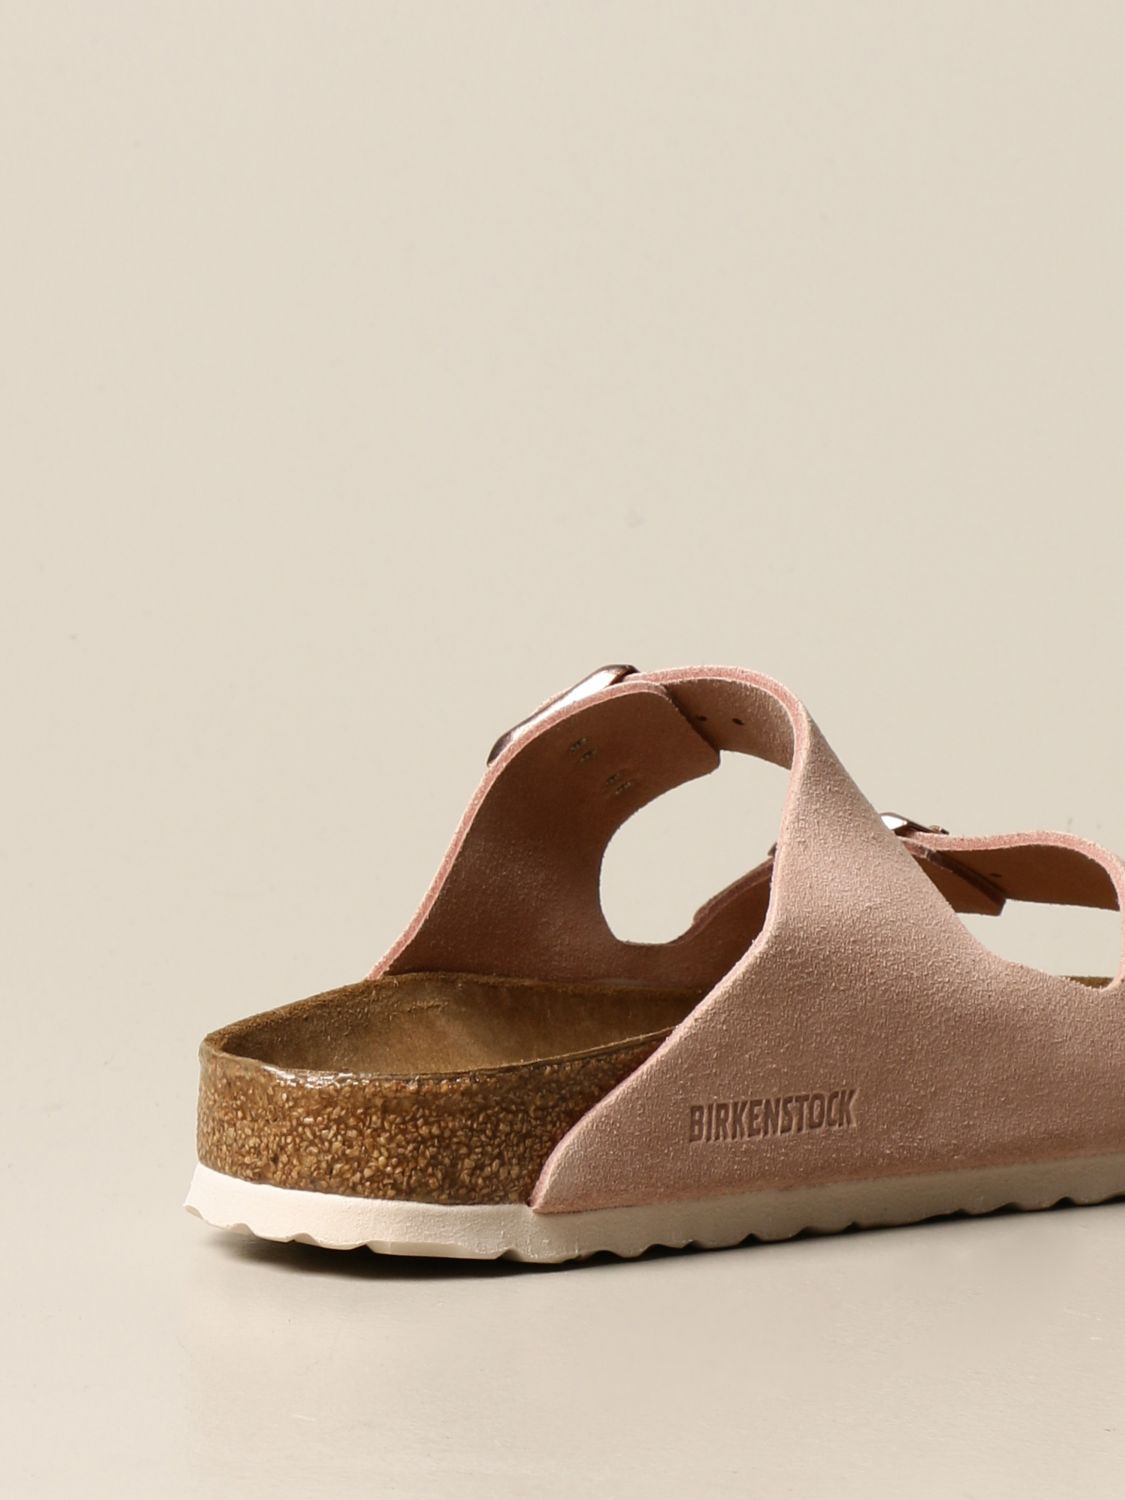 Sandals Birkenstock: Shoes men Birkenstock pink 3